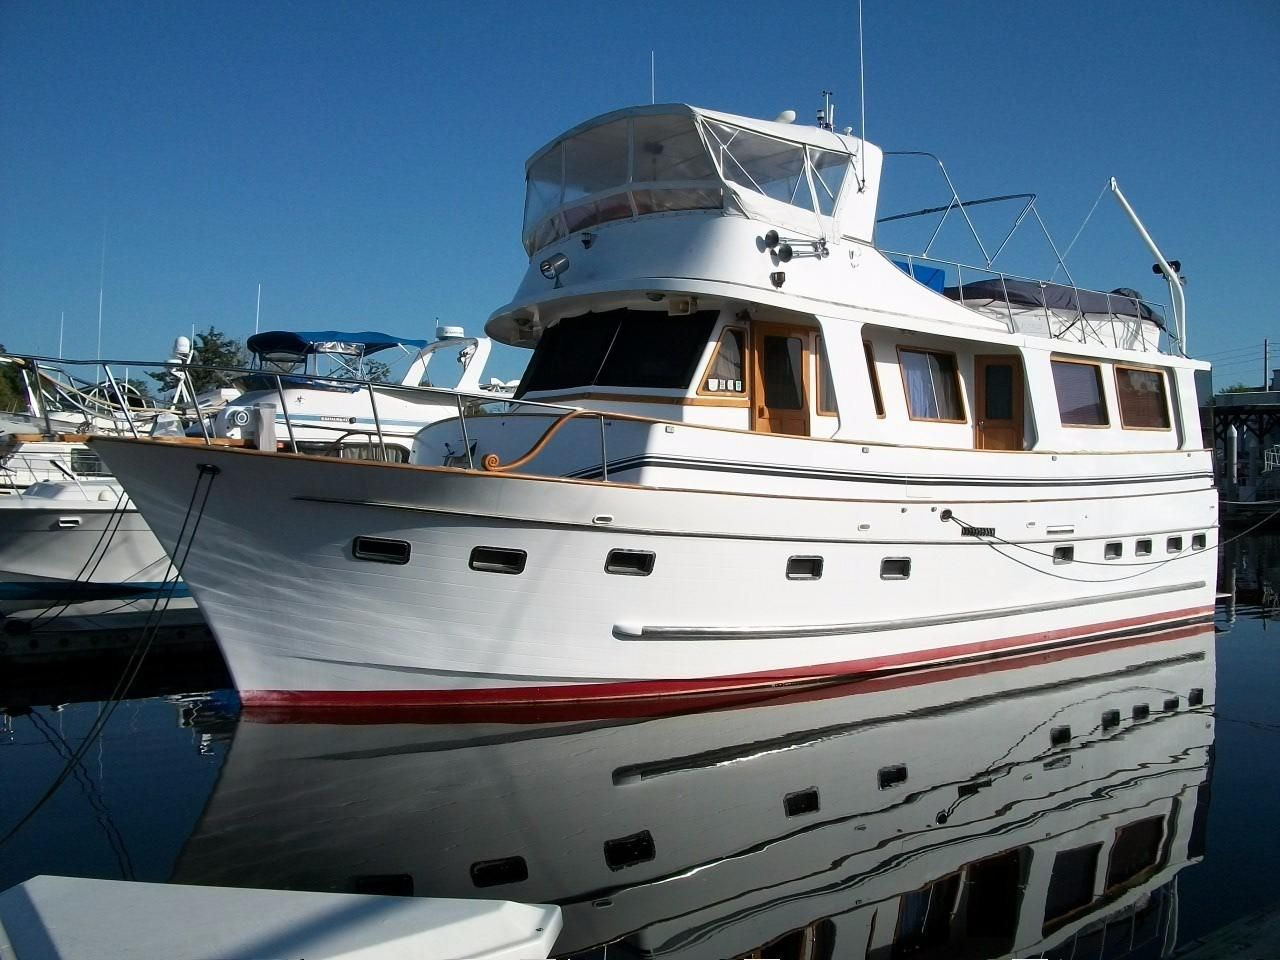 1987 marine trader 50 motor yacht power boat for sale for Boat motors for sale in florida